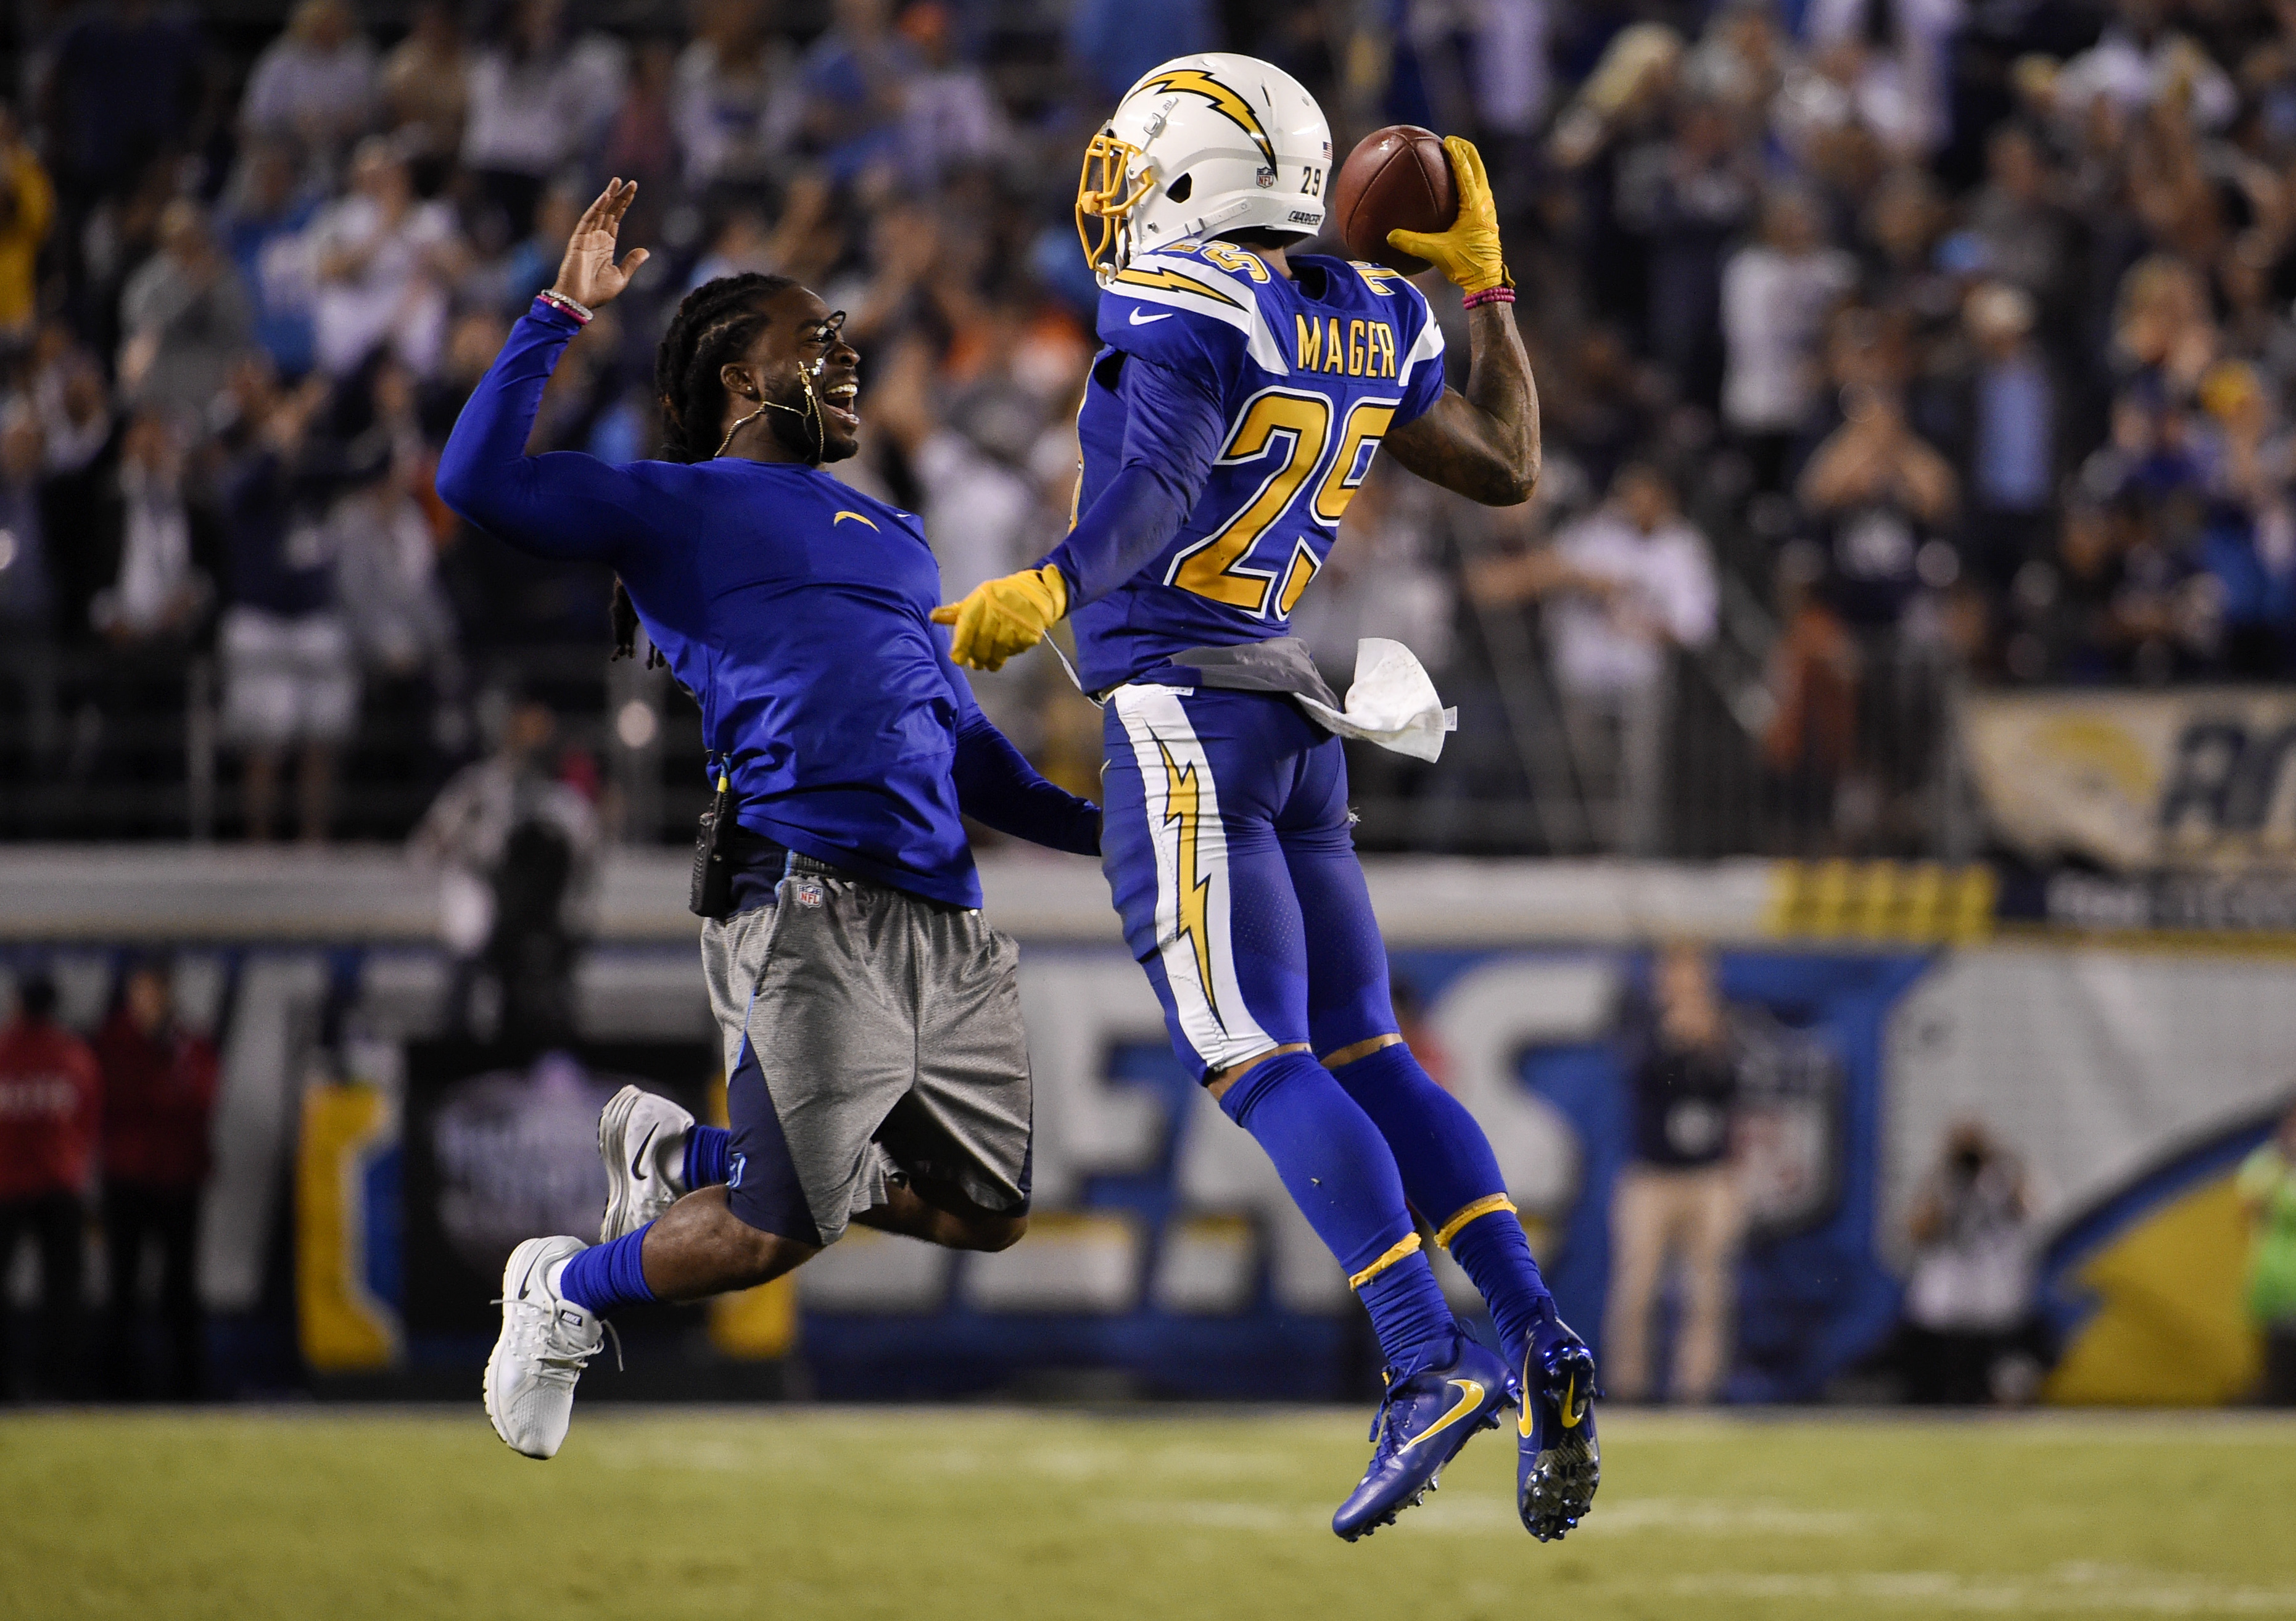 San Diego Chargers cornerback Craig Mager (29) reacts with teammate strong safety Jahleel Addae after picking up a fumble during the second half of an NFL football game against the Denver Broncos, Thursday, Oct. 13, 2016, in San Diego. (AP Photo/Denis Por